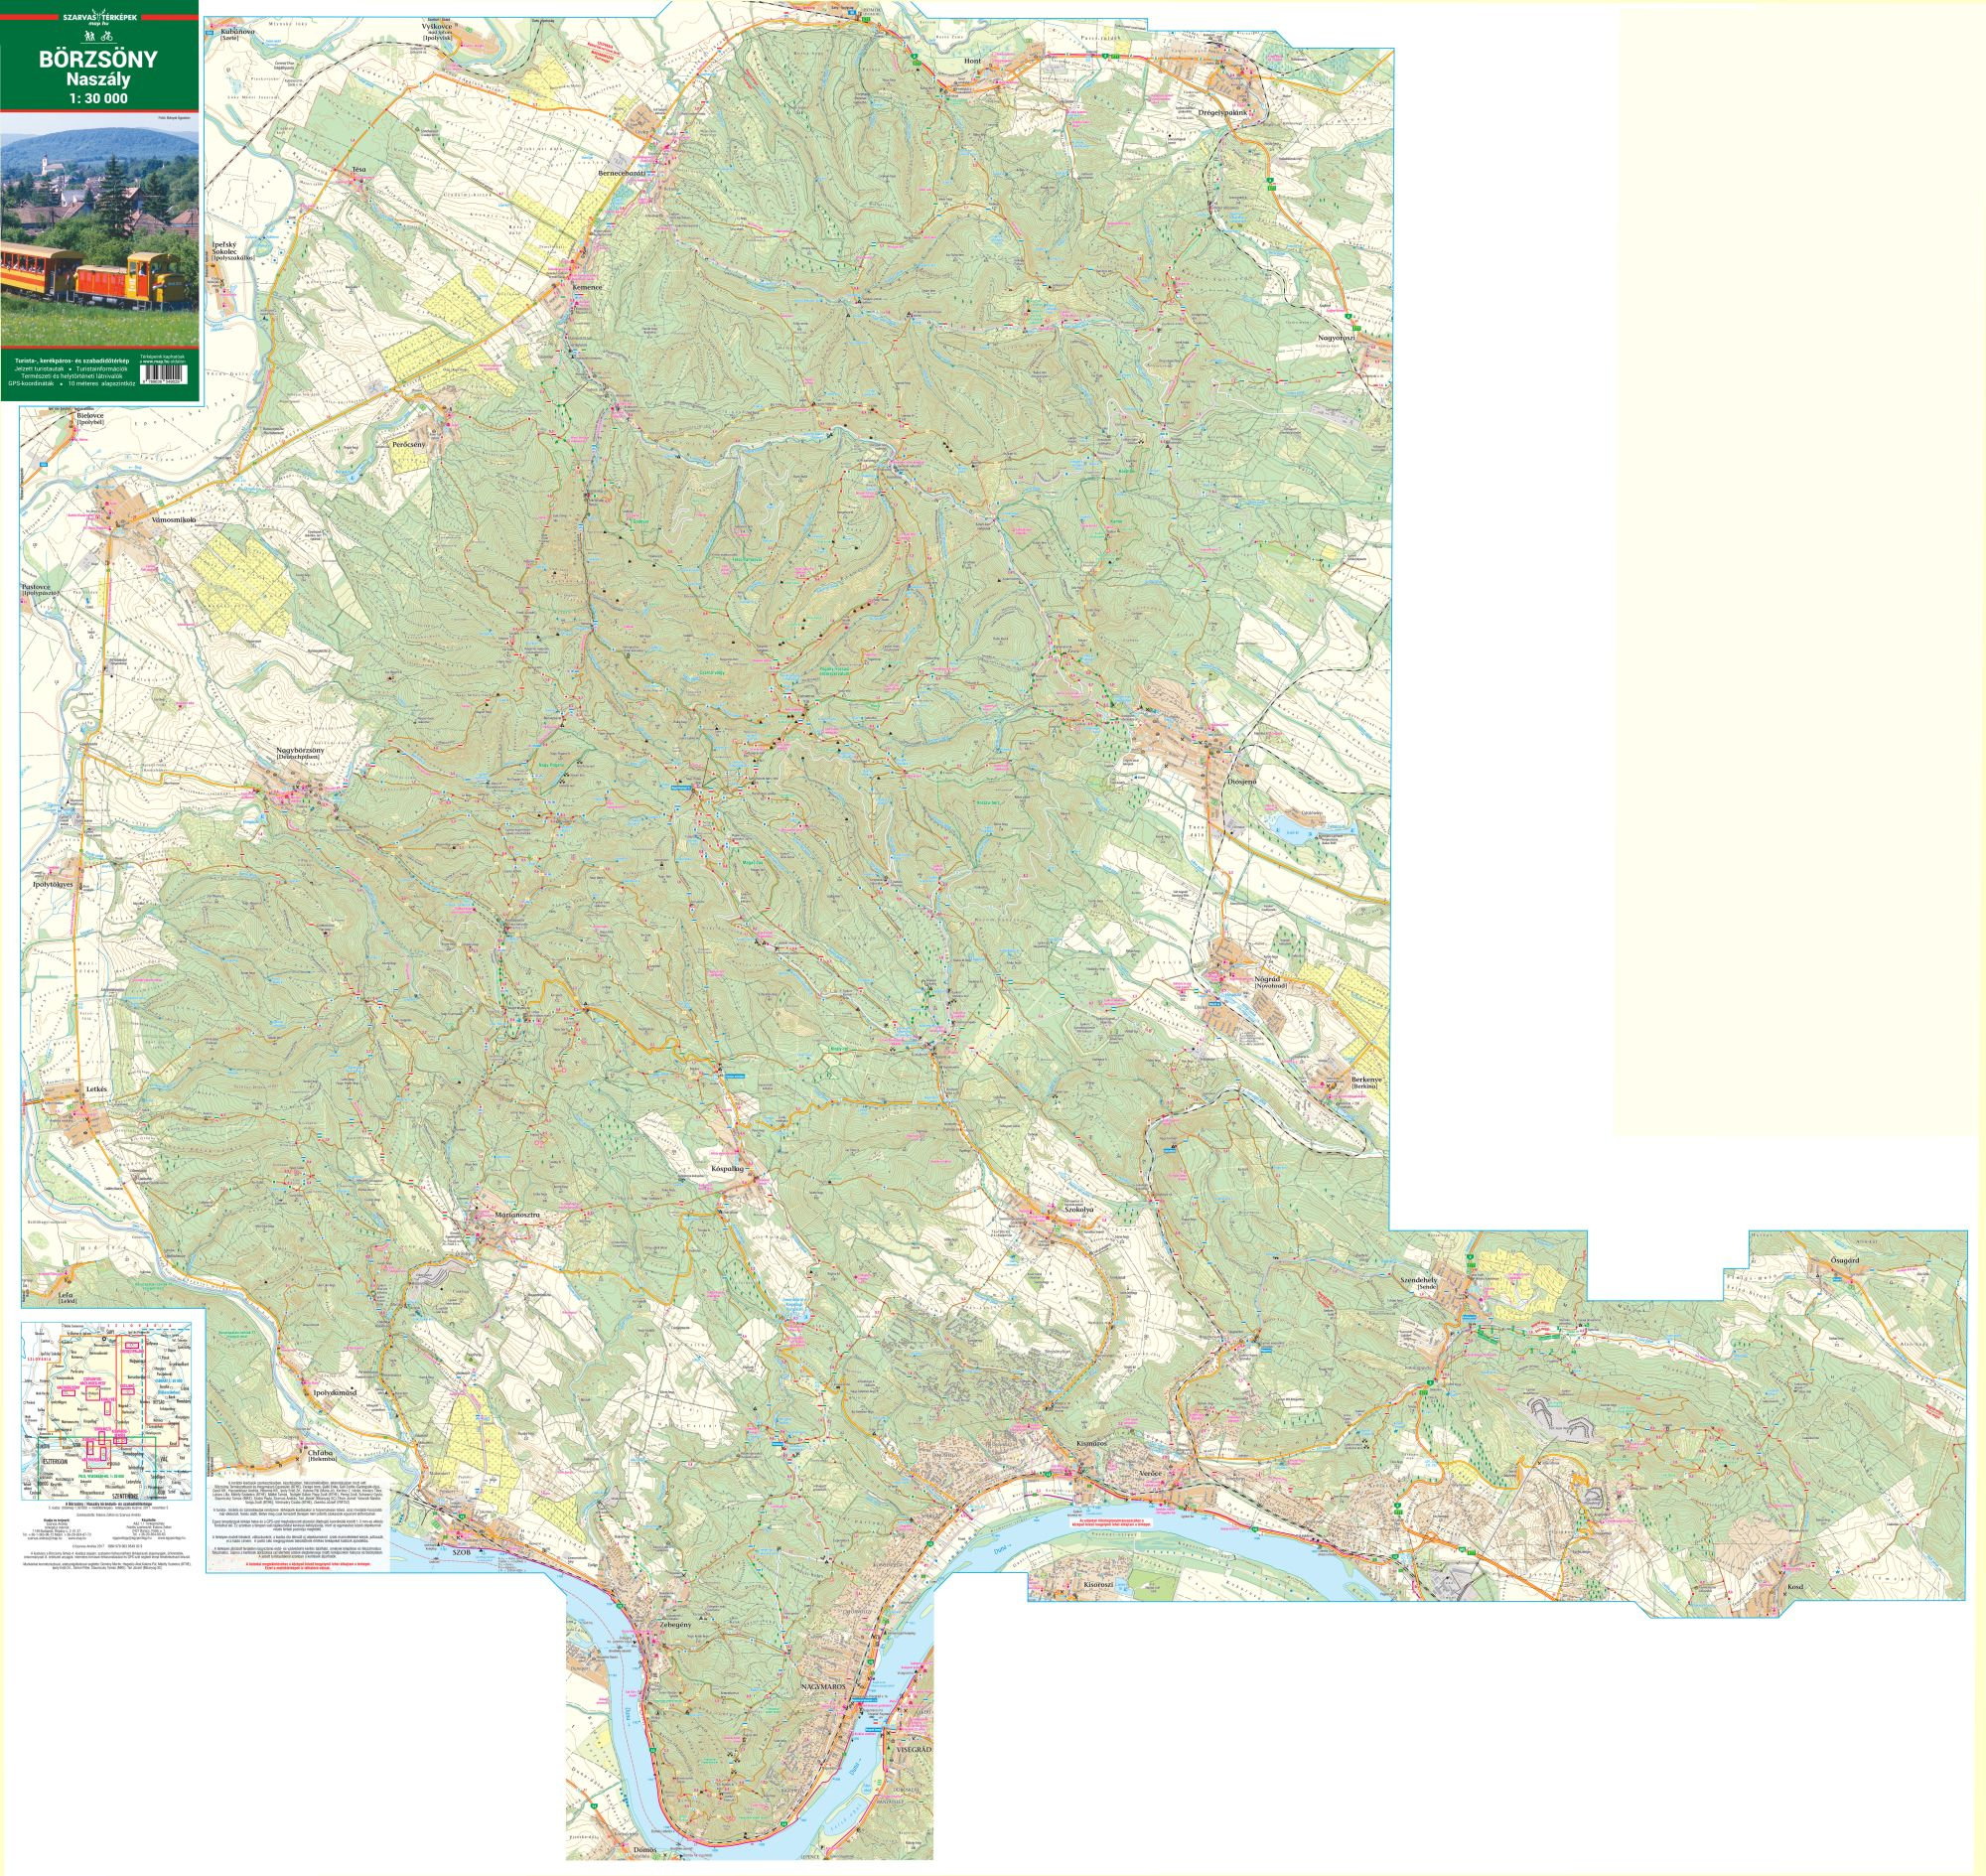 Tourist and biking map for mobile phones and tablets